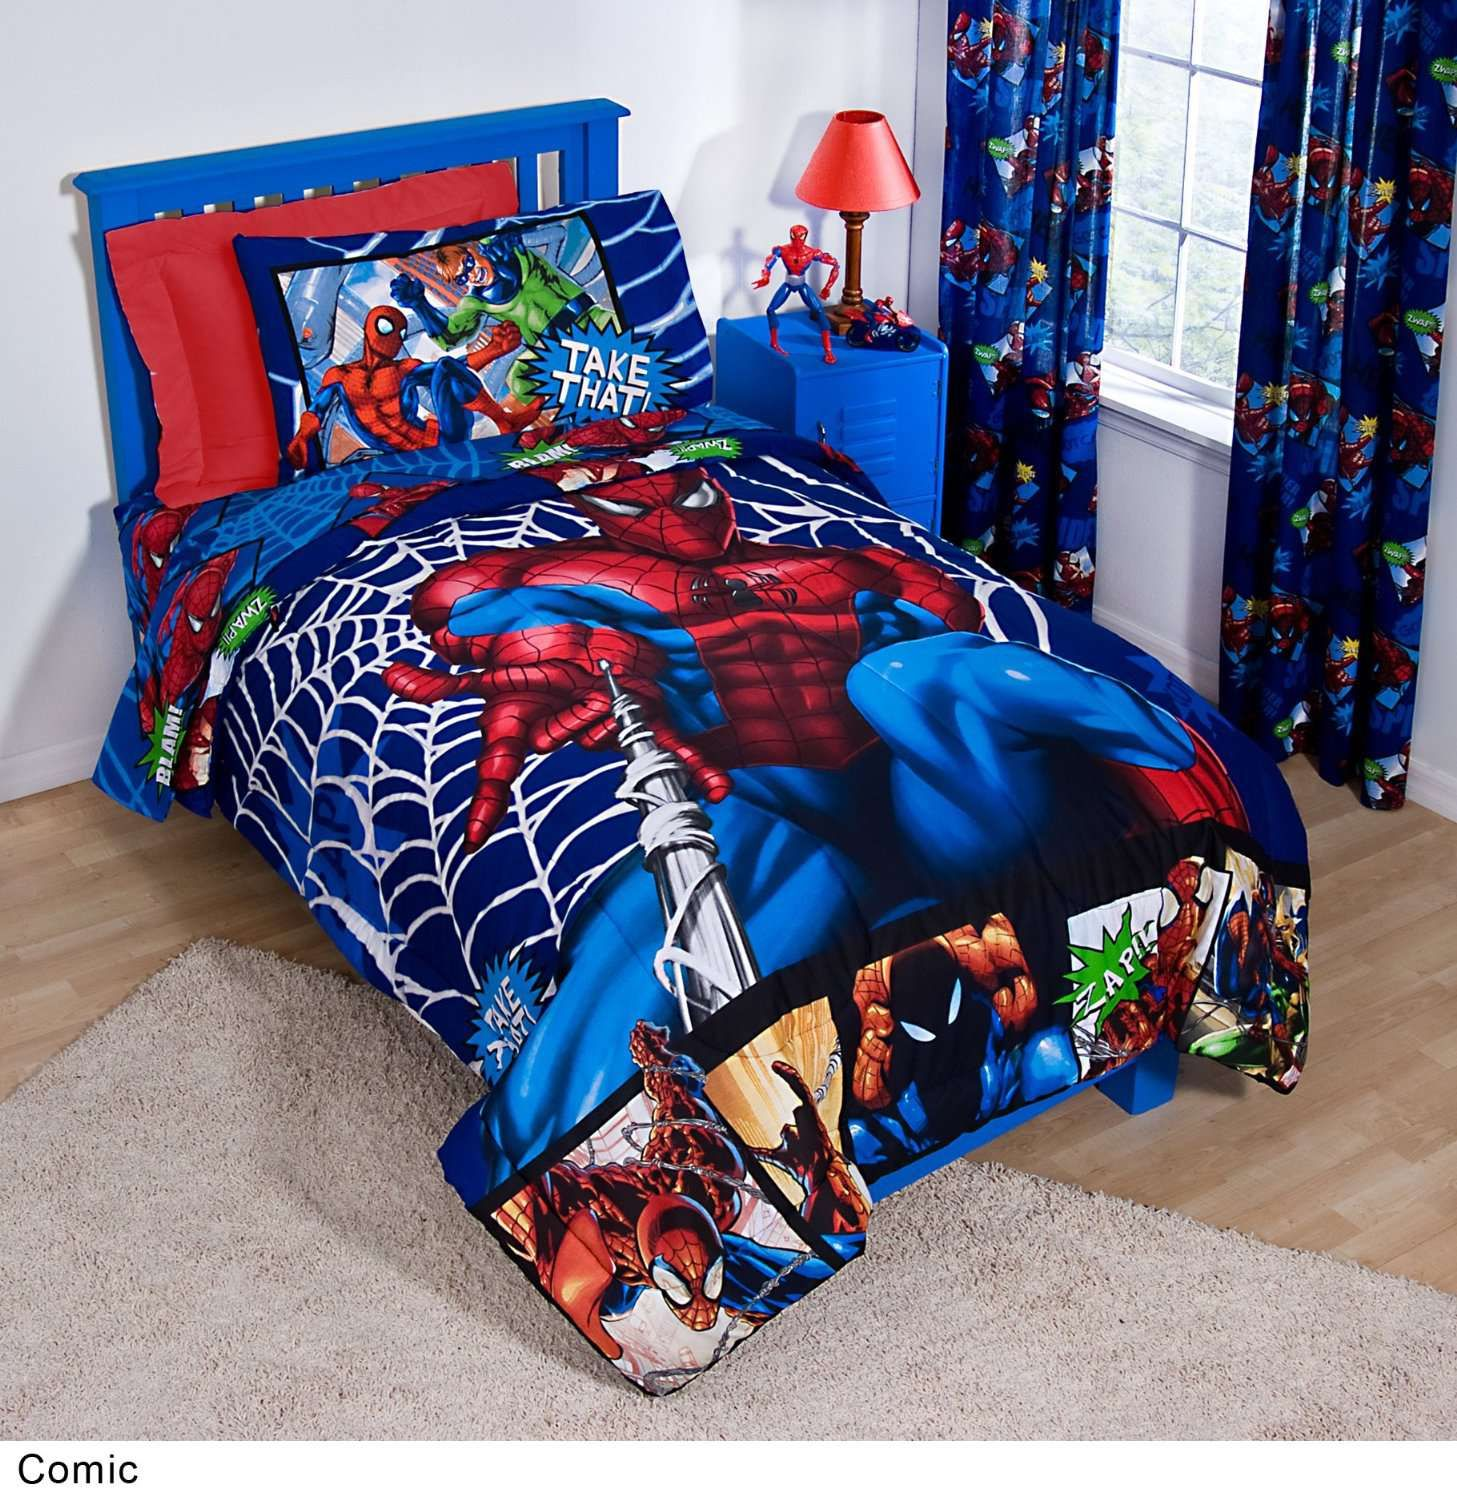 ideas new mattress endearing pine also bed spiderman paint colors rail blue divine simple decorating set wooden red concept wall frame in window bedroom with